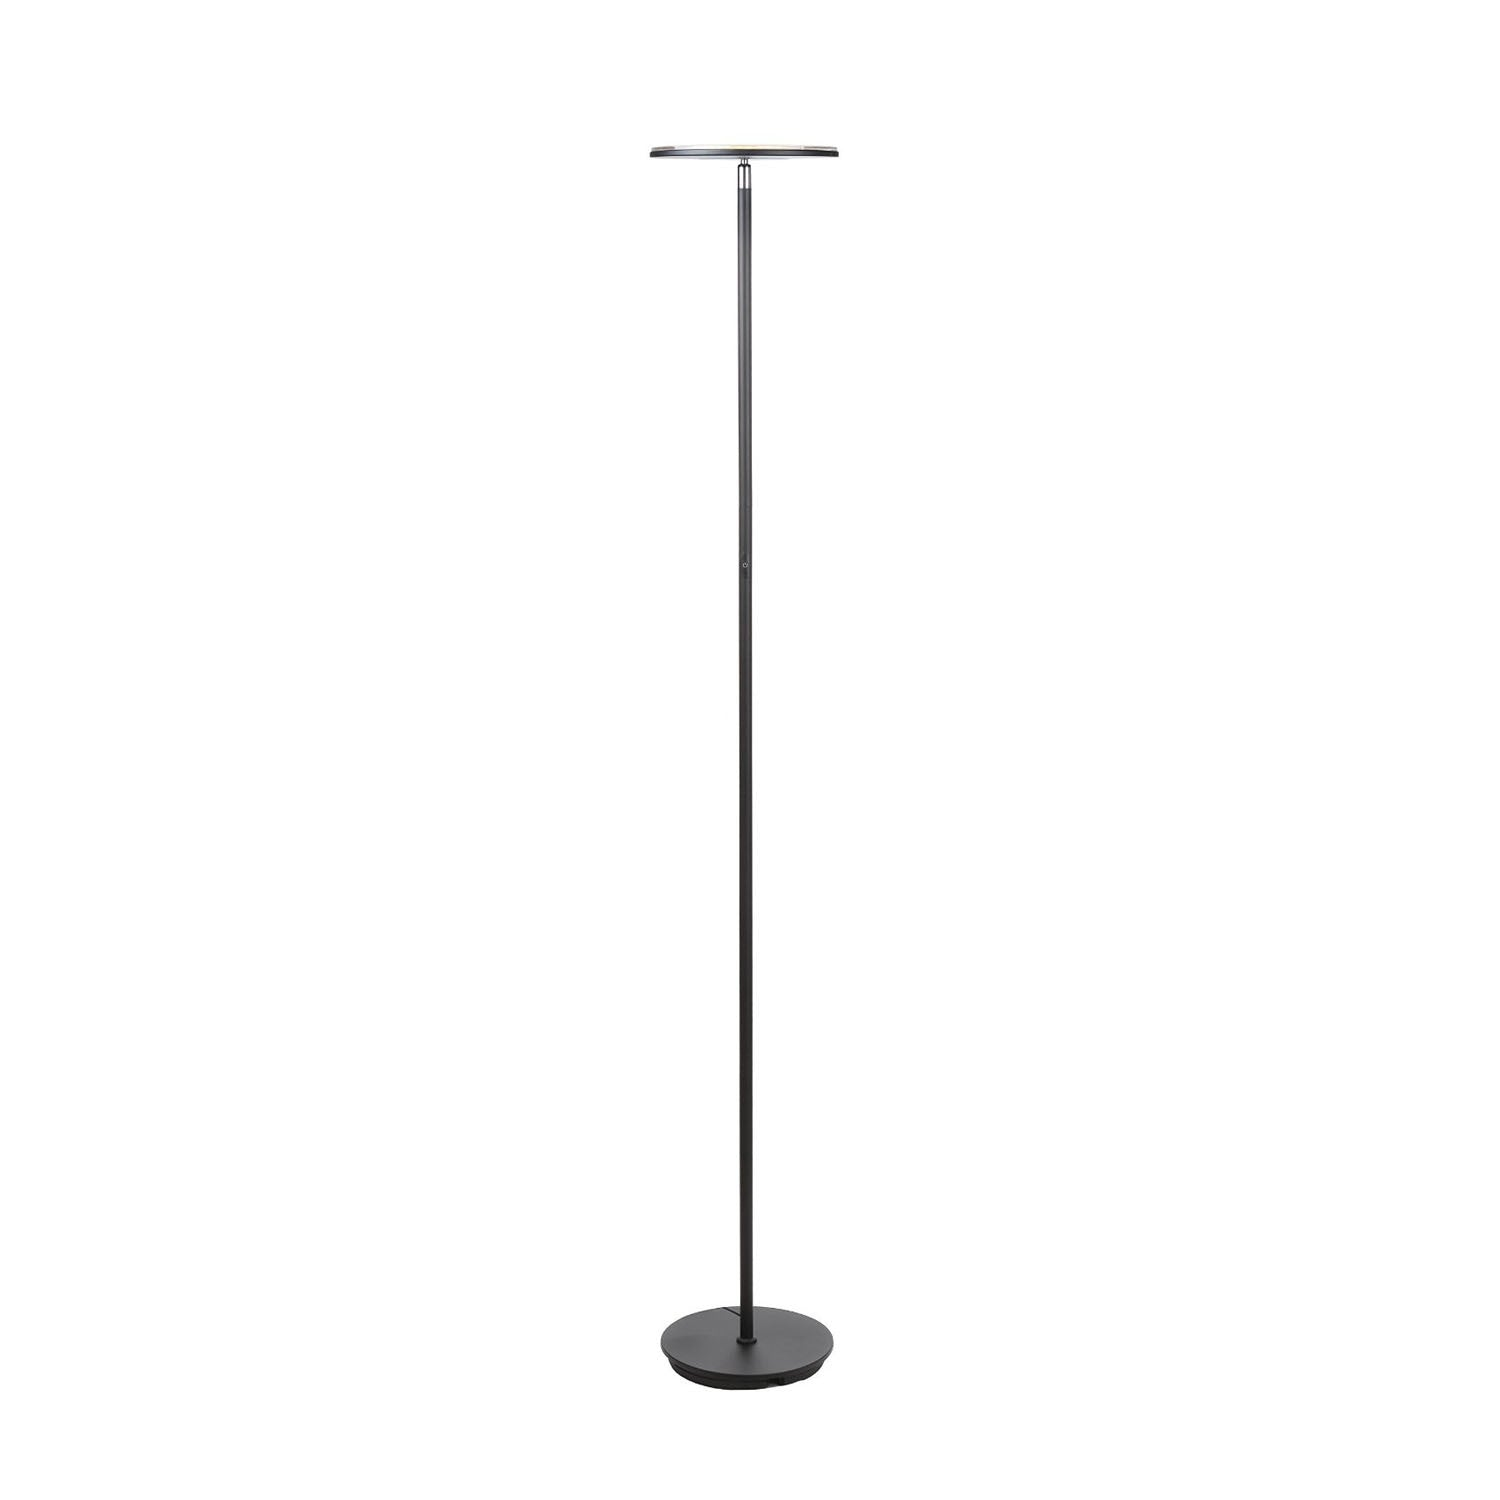 Brightech Store | SKY LED Torchiere Floor Lamp – Dimmable Super ...